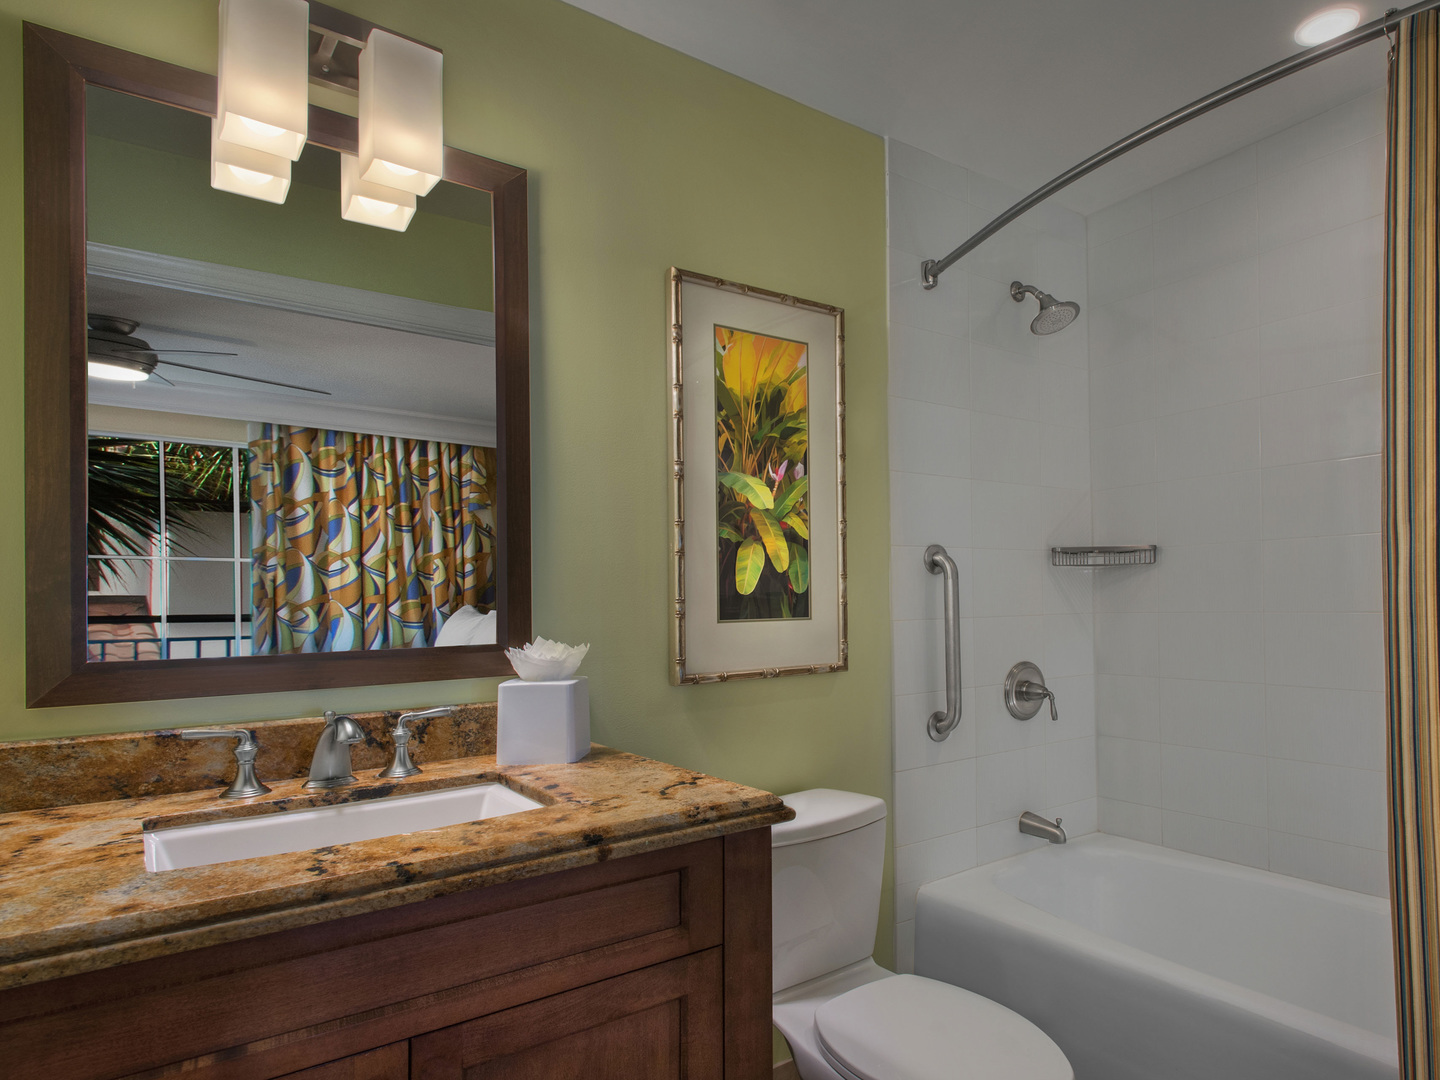 Marriott's Lakeshore Reserve 2-Bedroom Townhouse Guest Bathroom. Marriott's Lakeshore Reserve is located in Orlando, Florida United States.